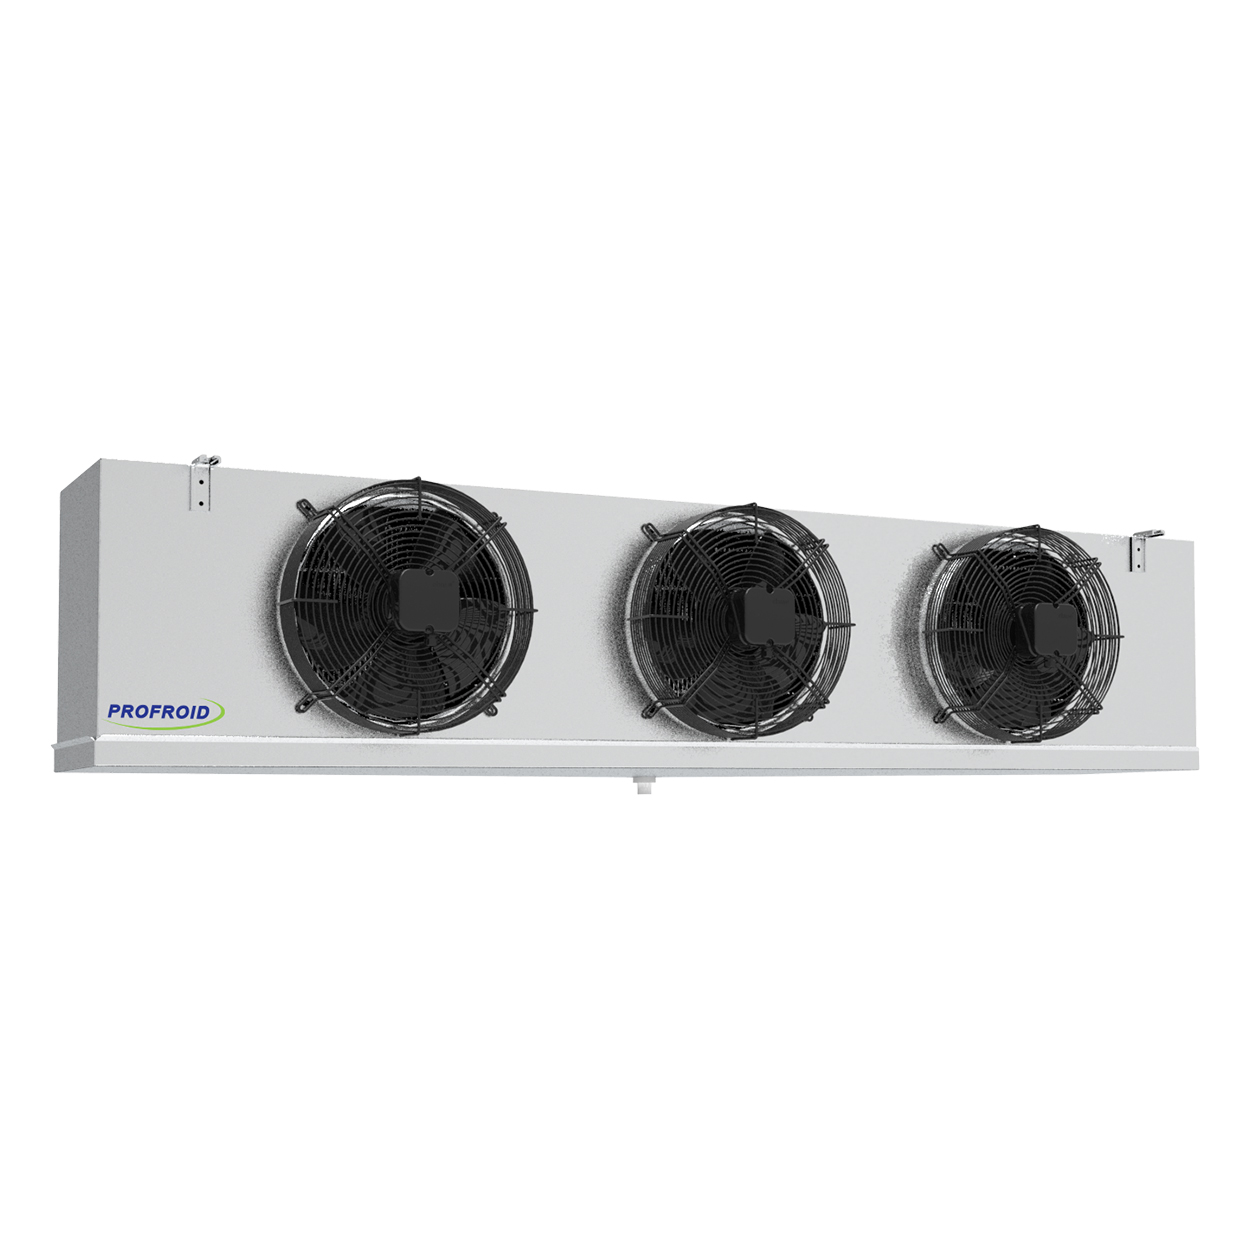 Profroid-Solo-25-31-air-cooler